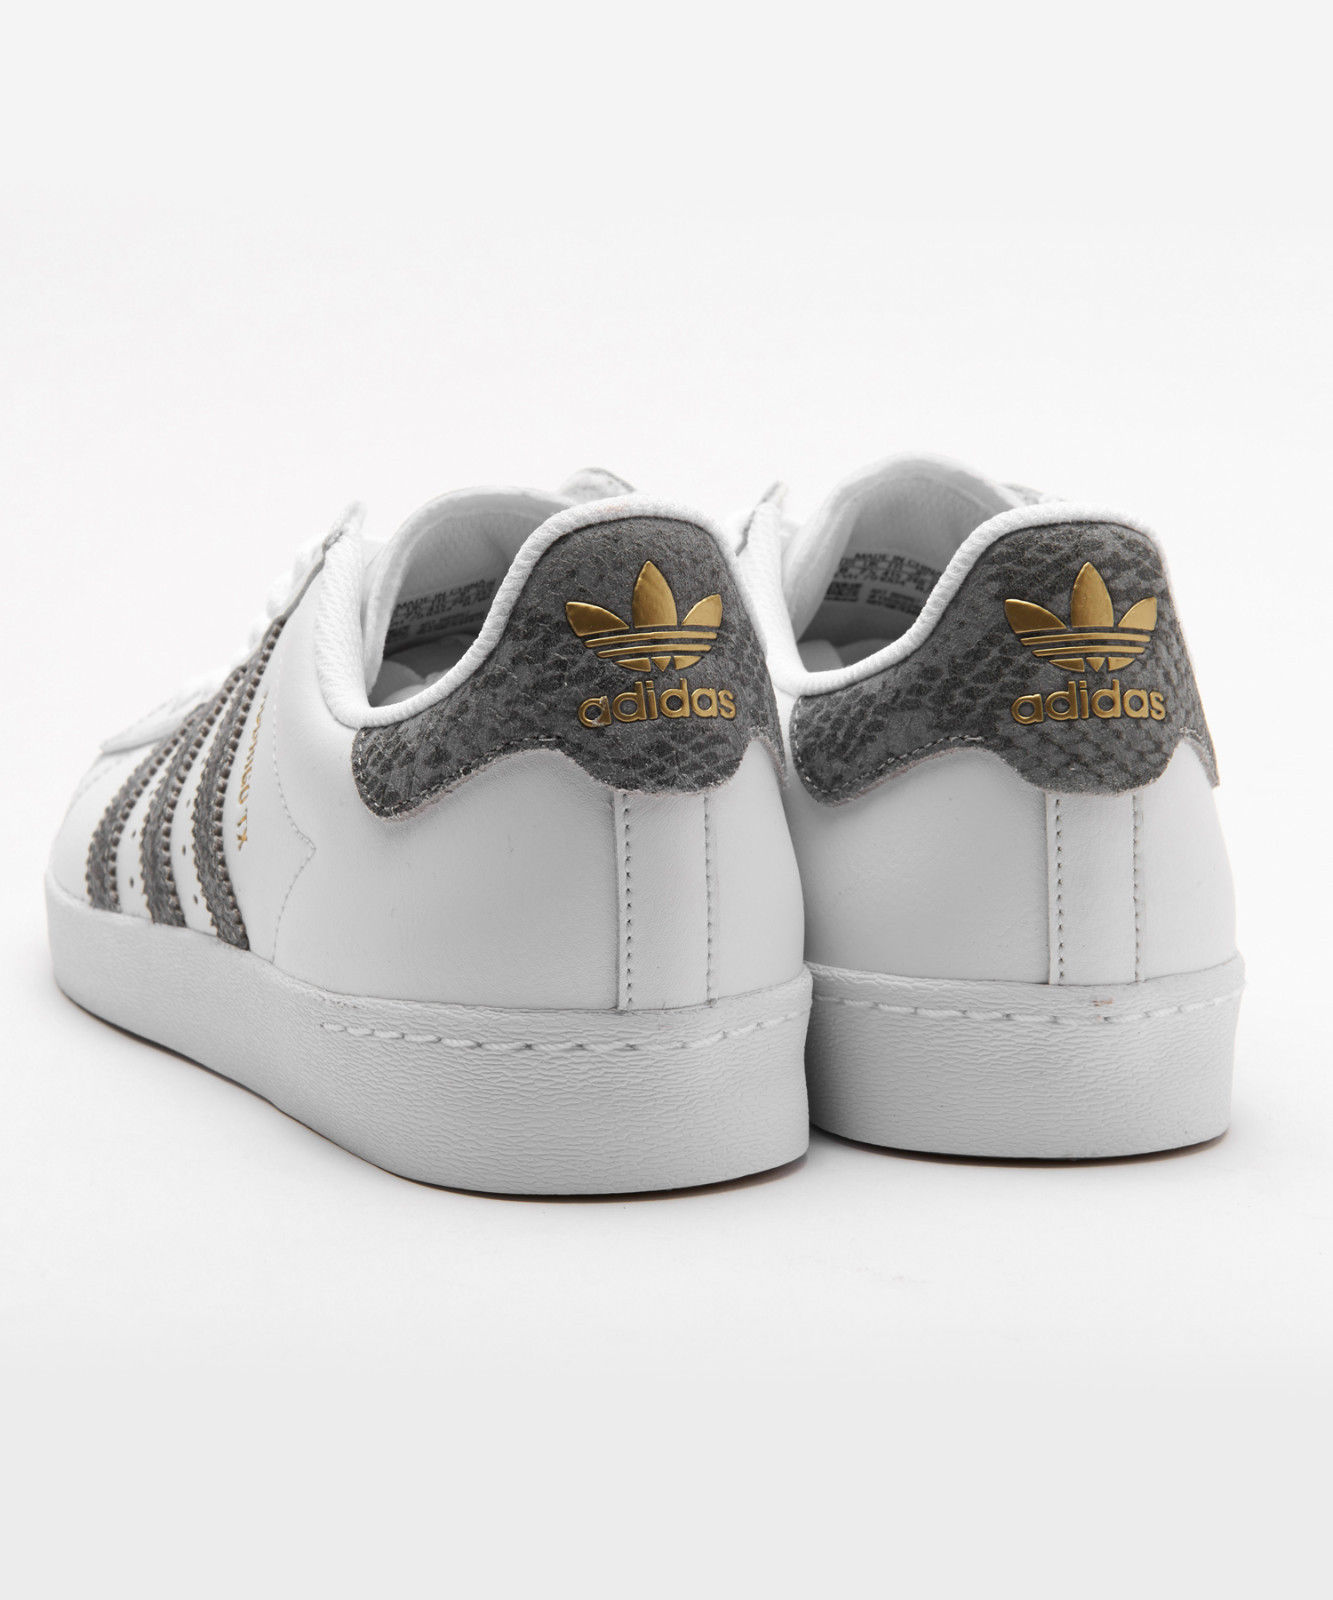 adidas superstar price taiwan